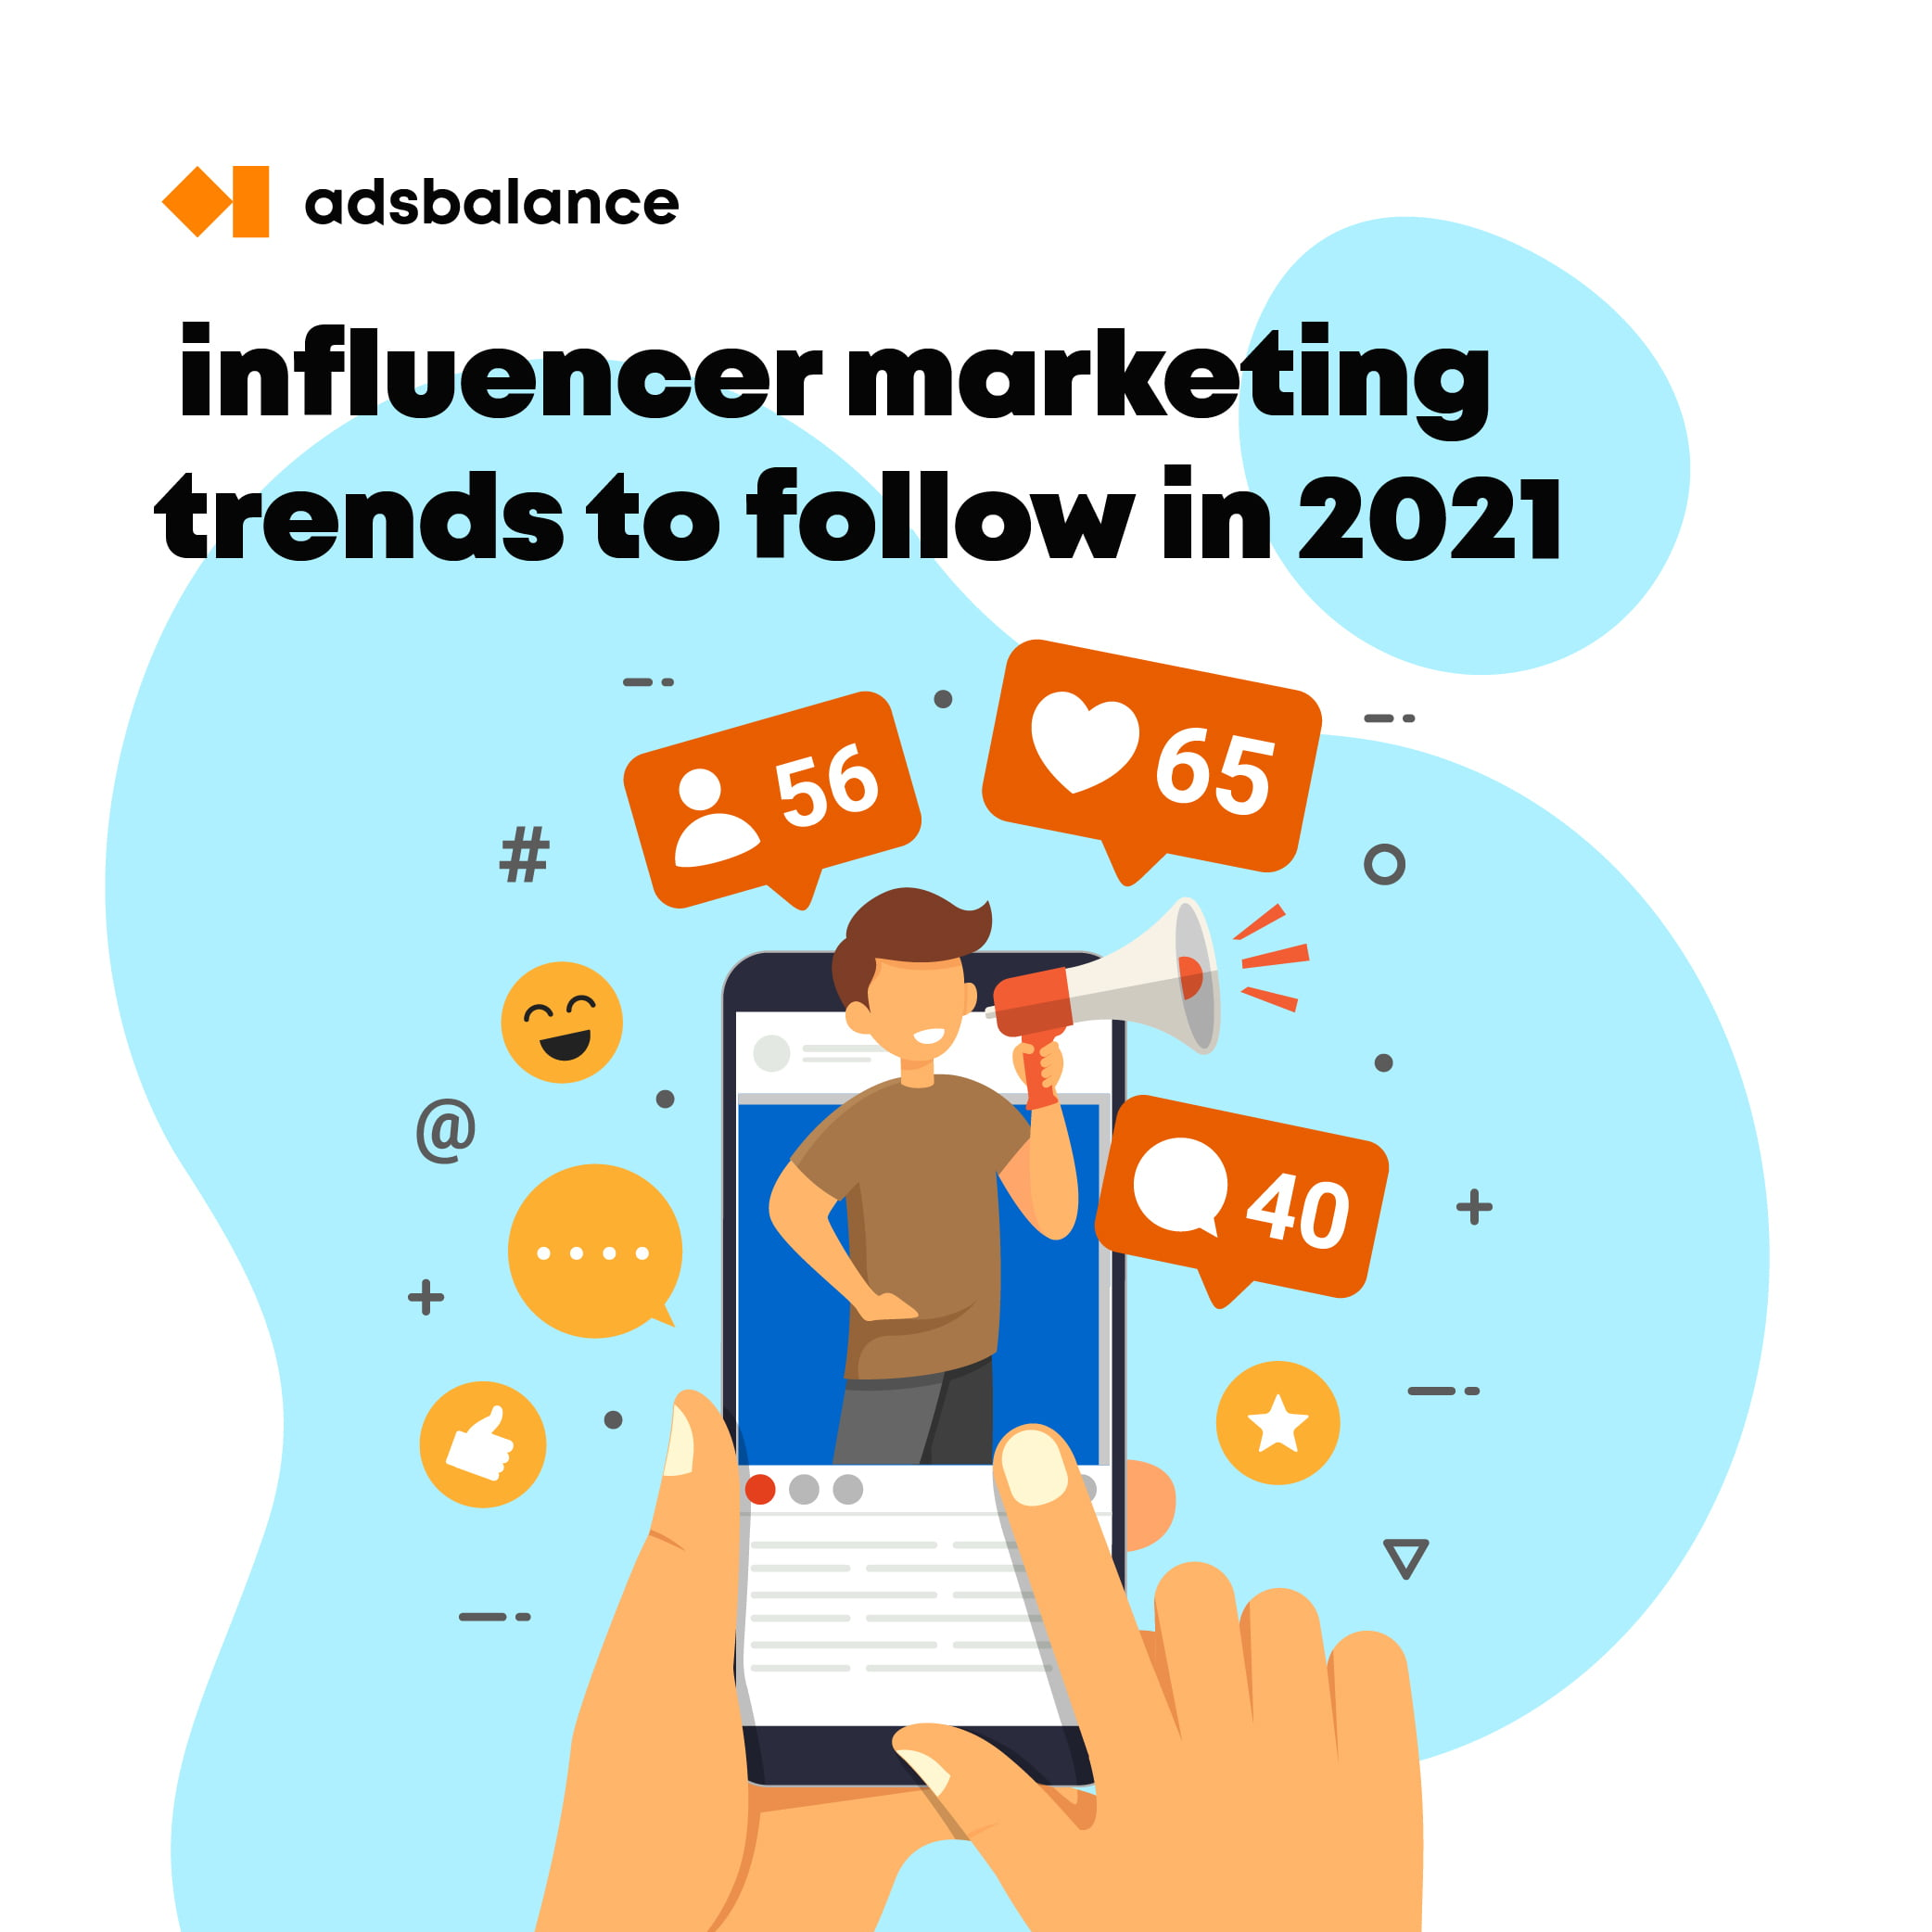 7 influencer marketing trends to follow